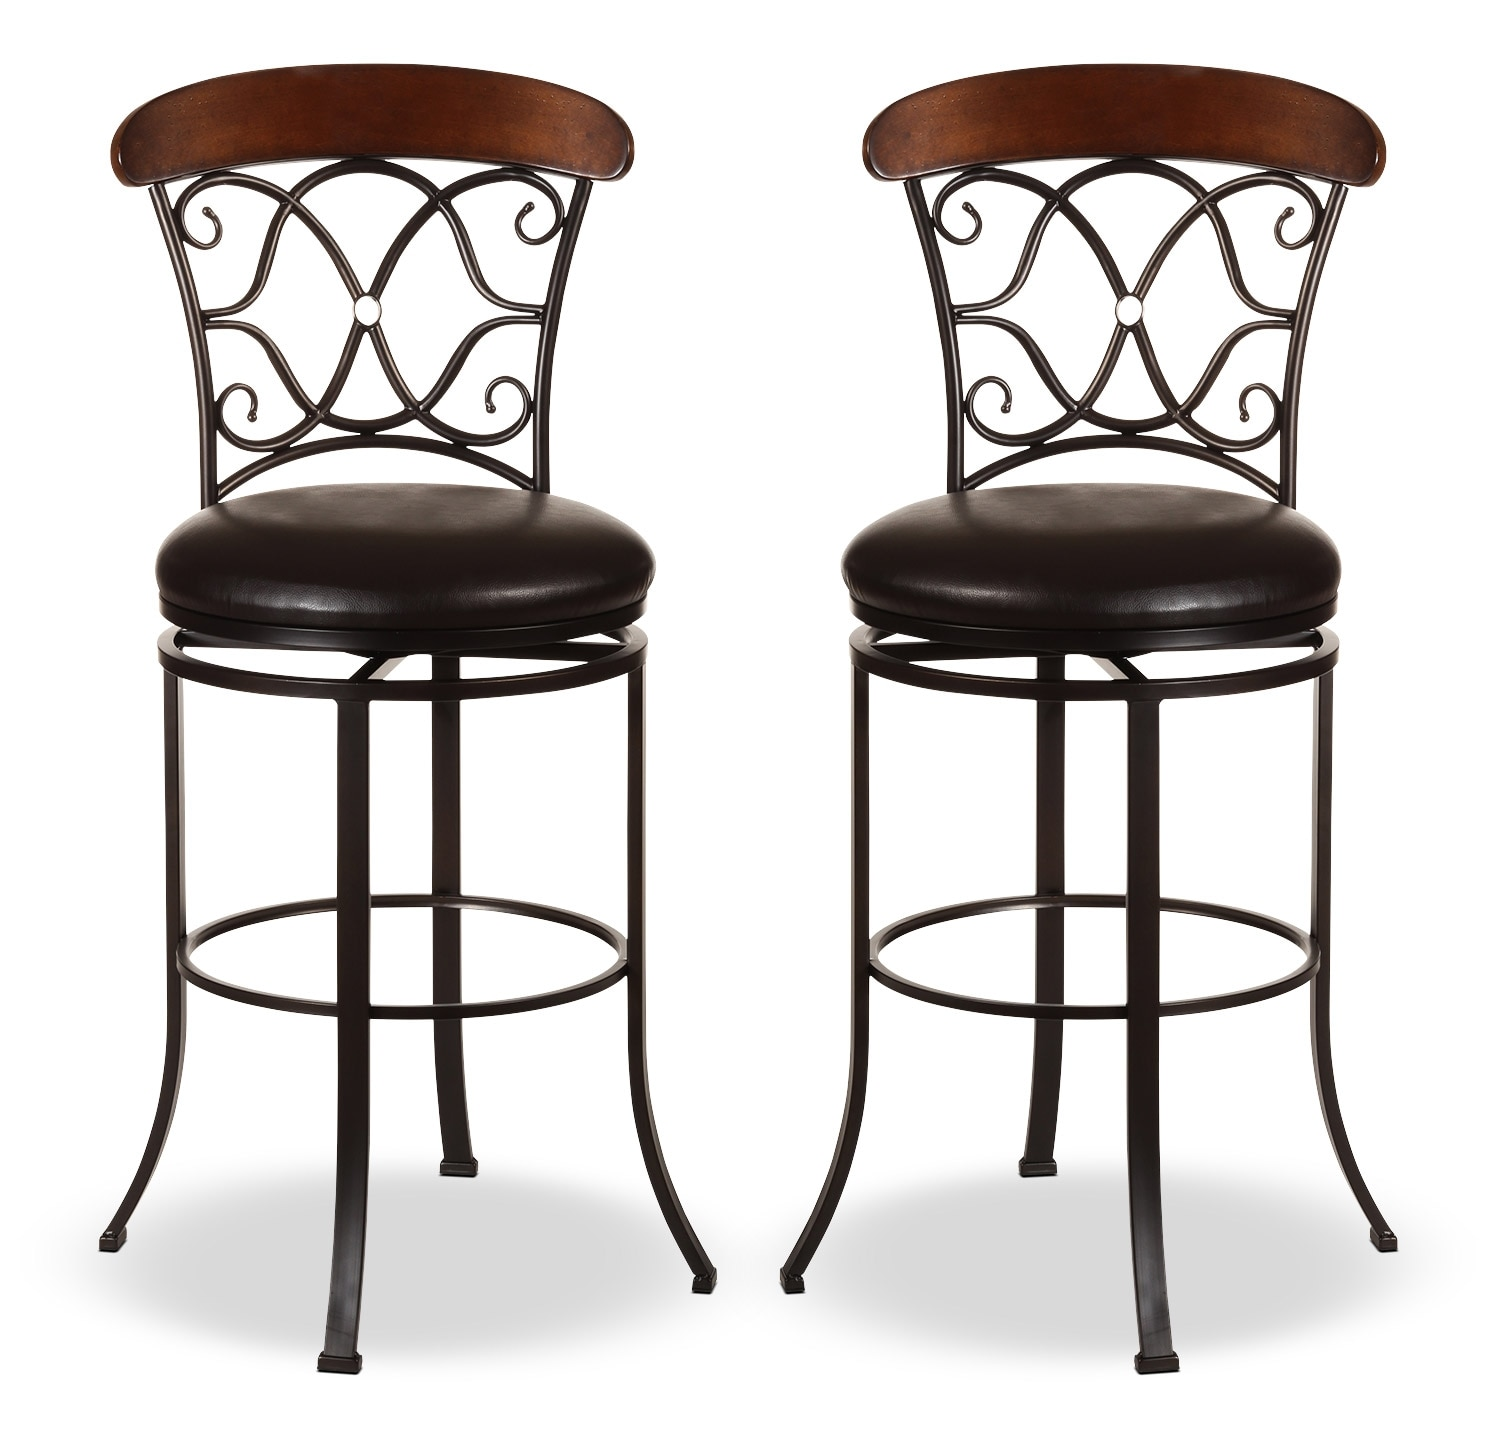 Dining Room Furniture - Dundee Swivel Barstool – Set of 2